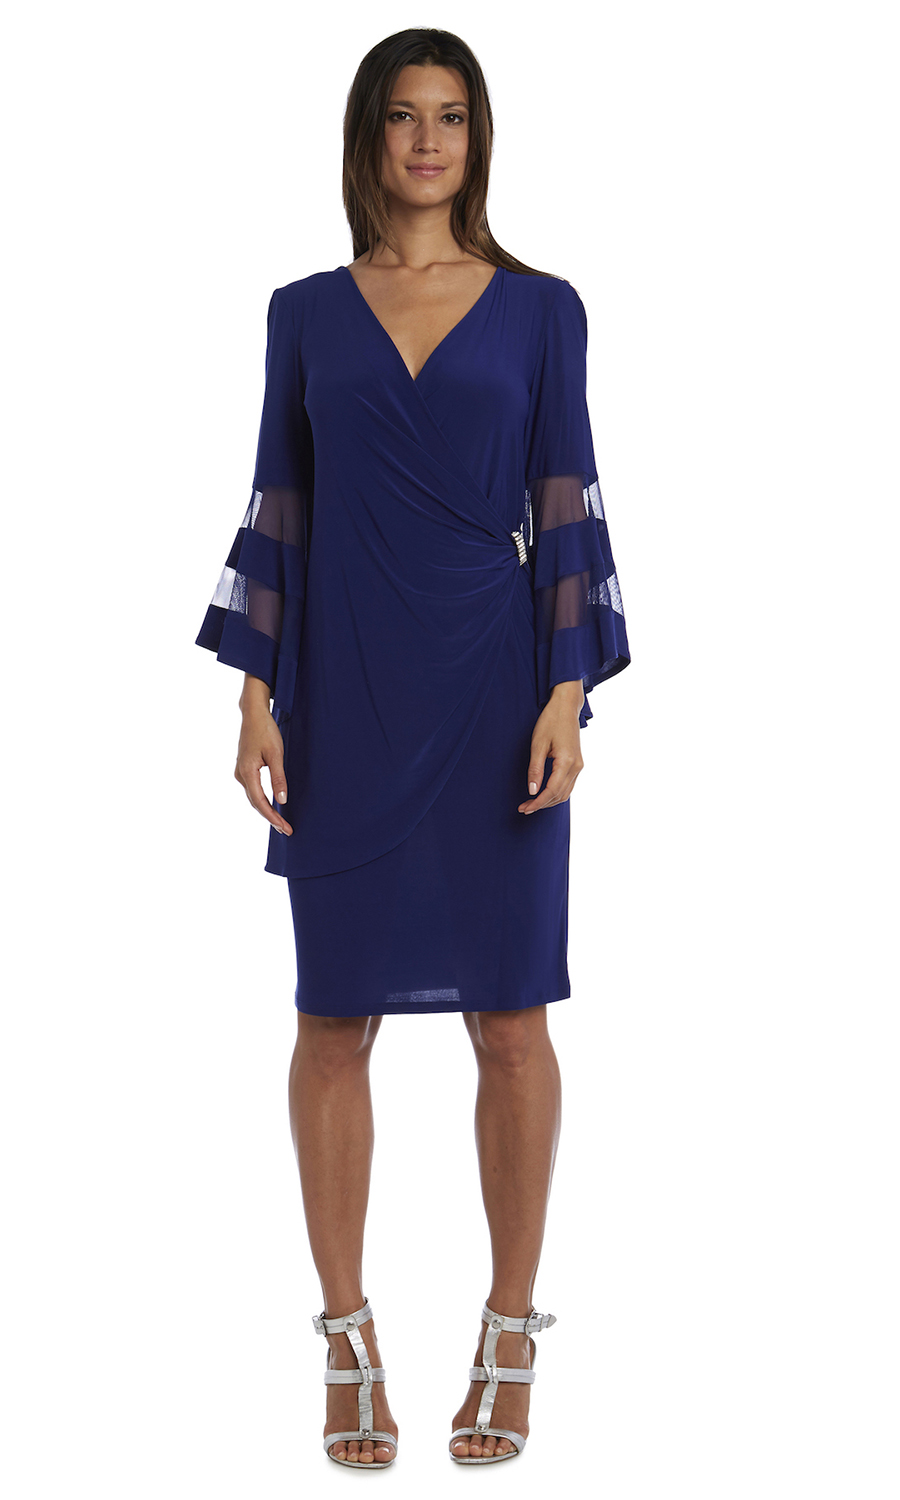 Illusion Bell Sleeve Dress with Rush Detail at Waist -Electric Blue - Front